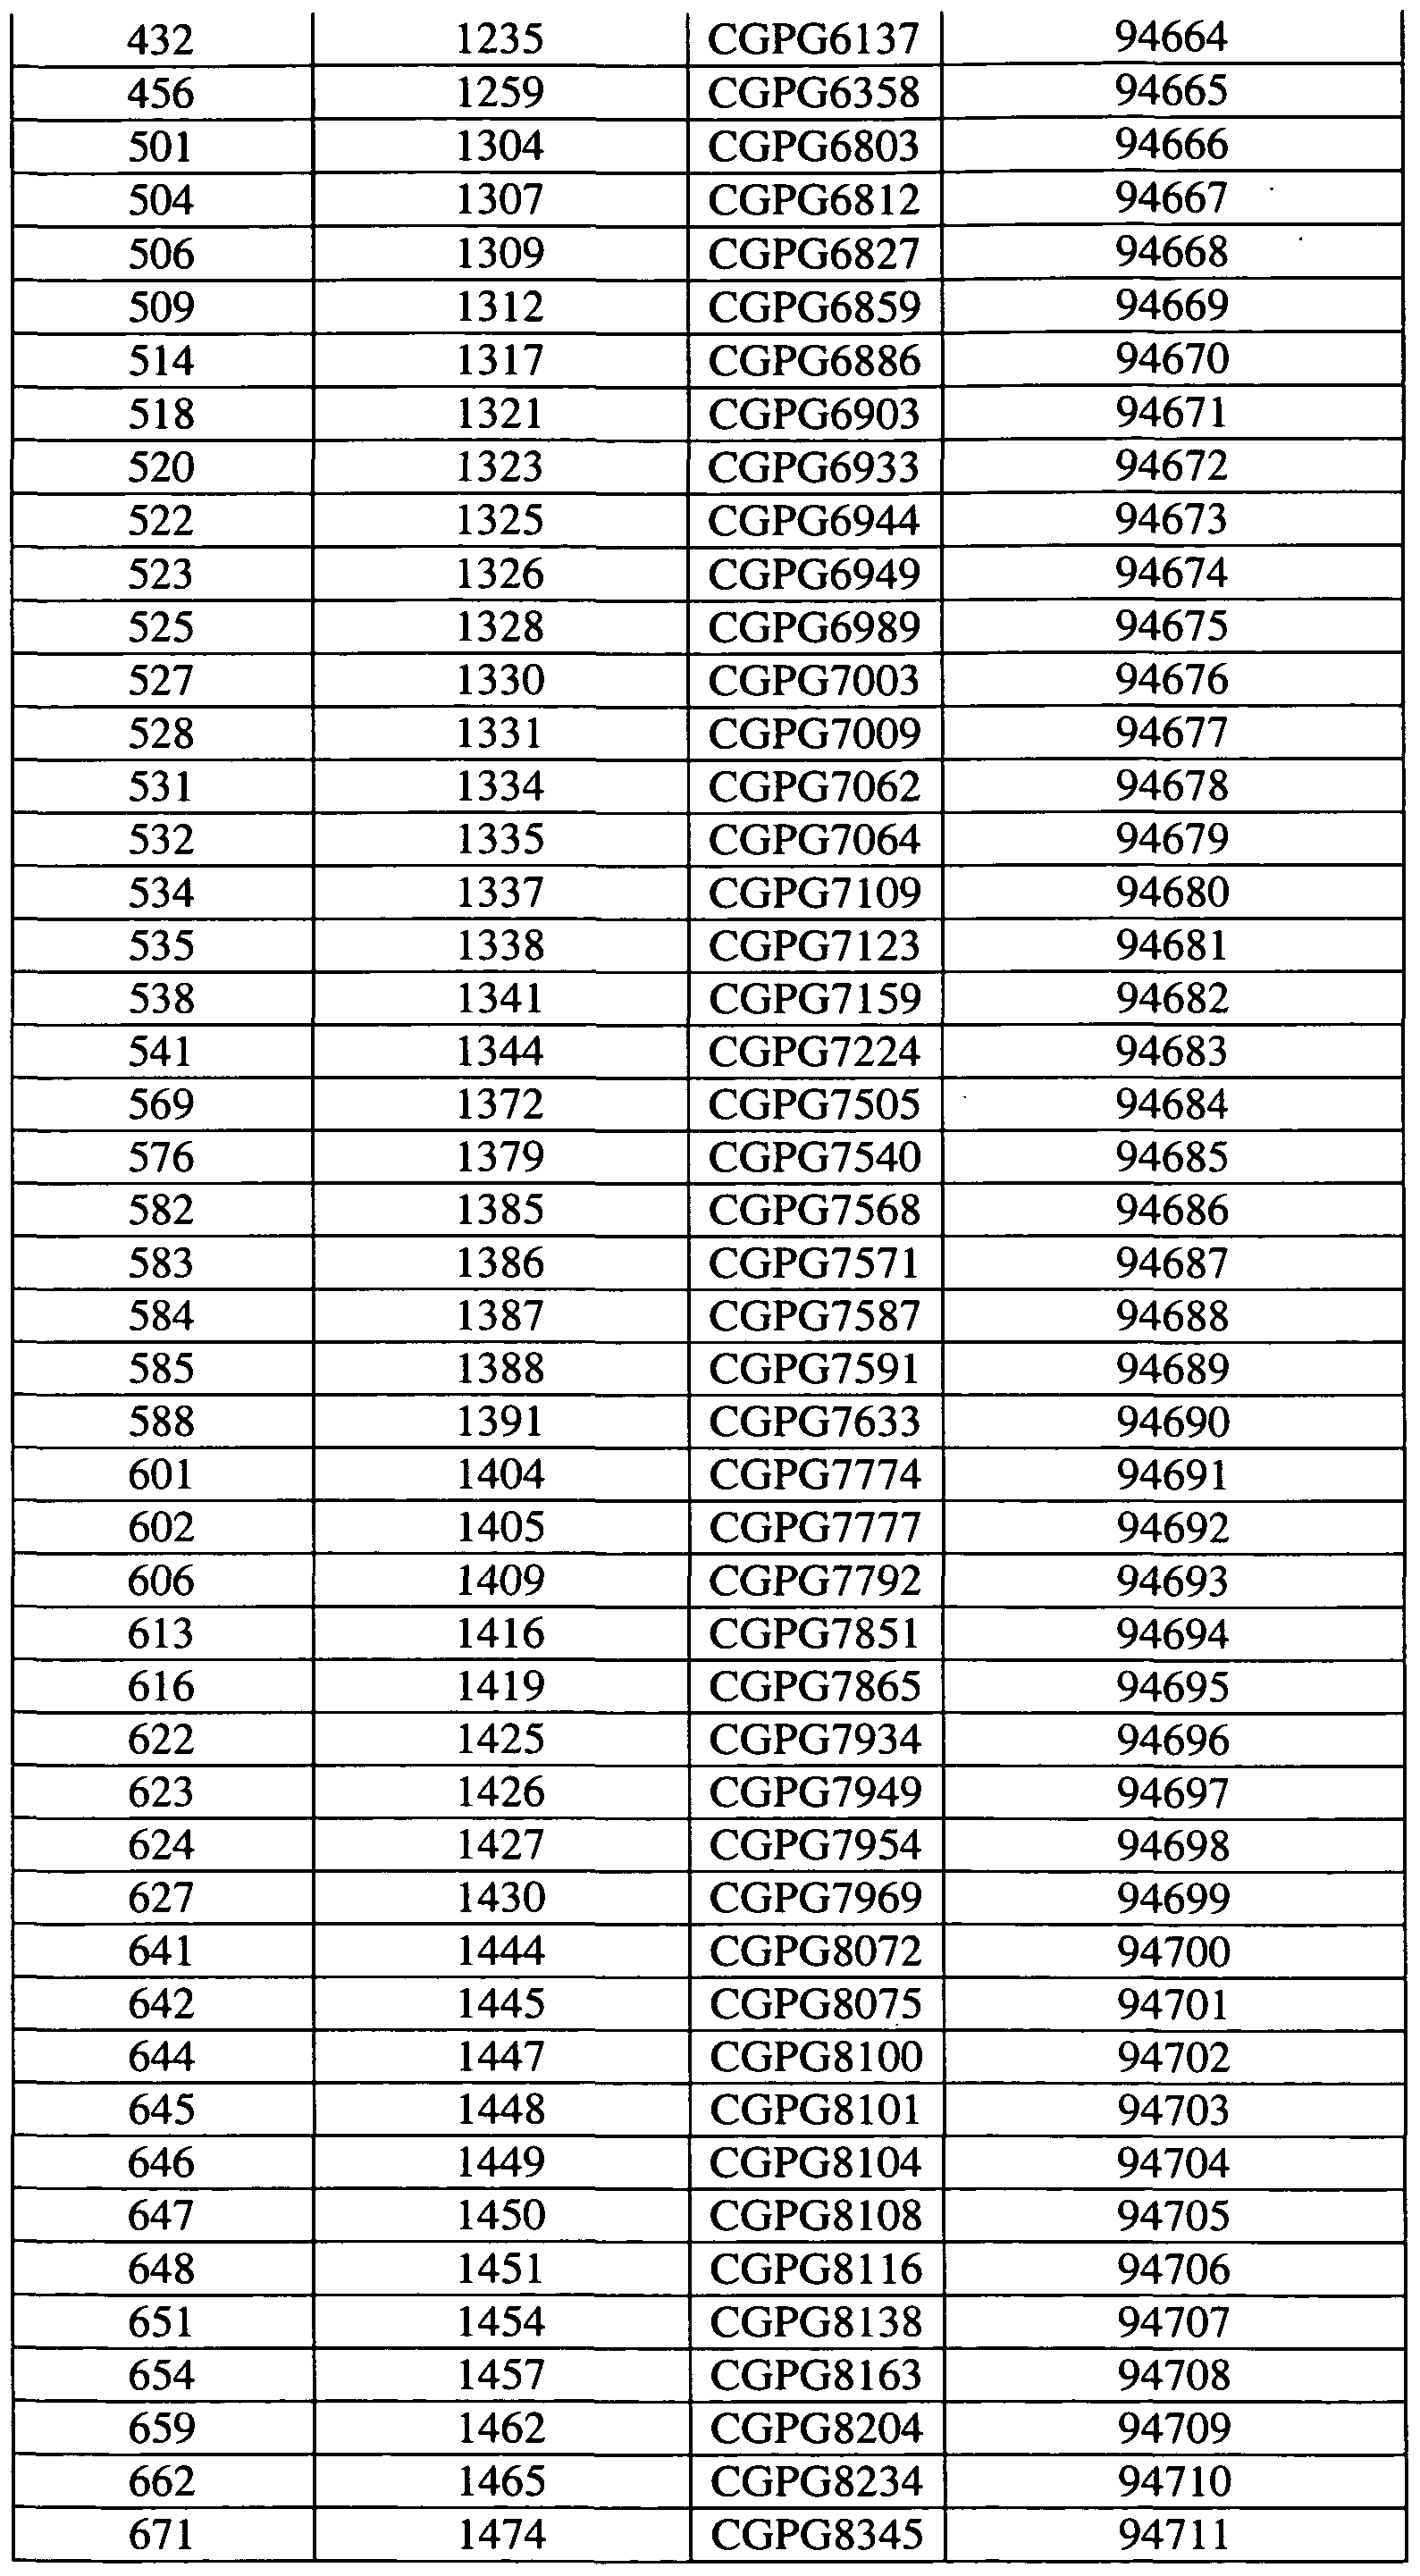 WO2009134339A2 - Genes and uses for plant enhancement - Google Patents